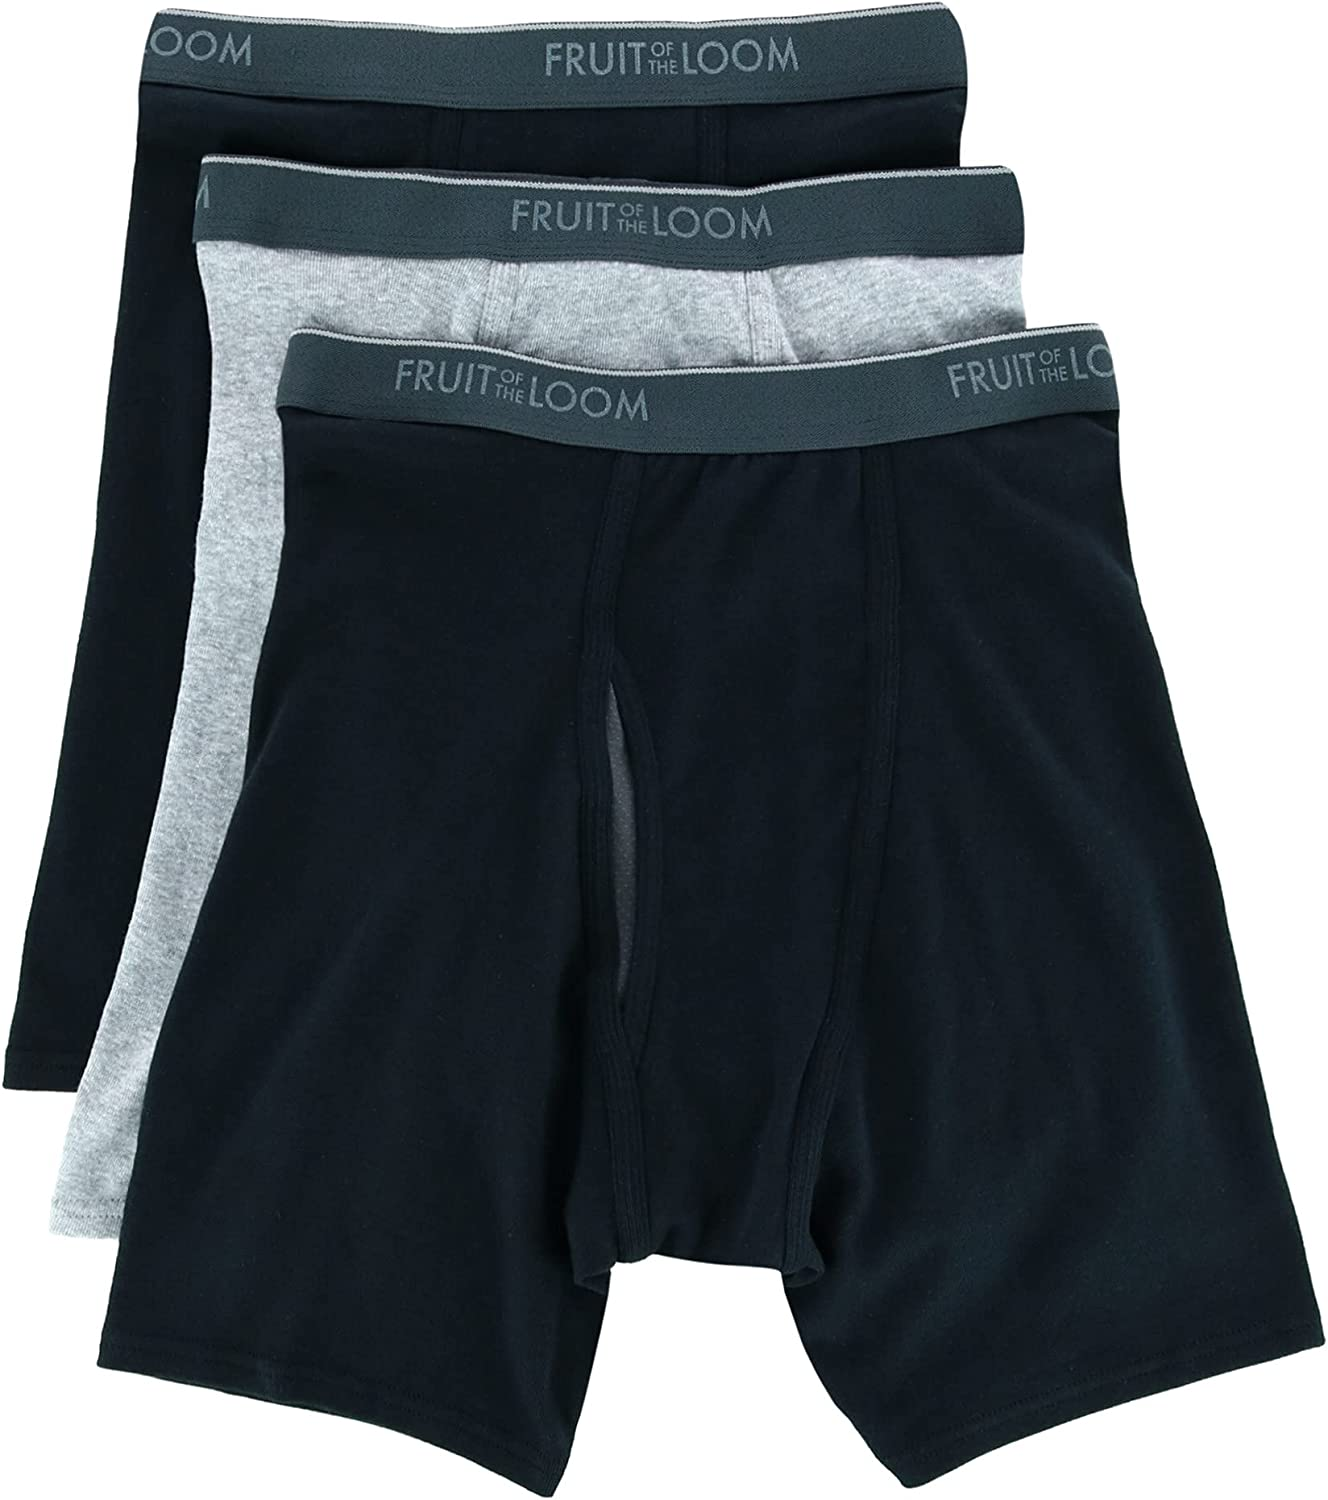 Fruit of the Loom Men's Coolzone Fly Black/Grey Boxer Brief - 3 Pack